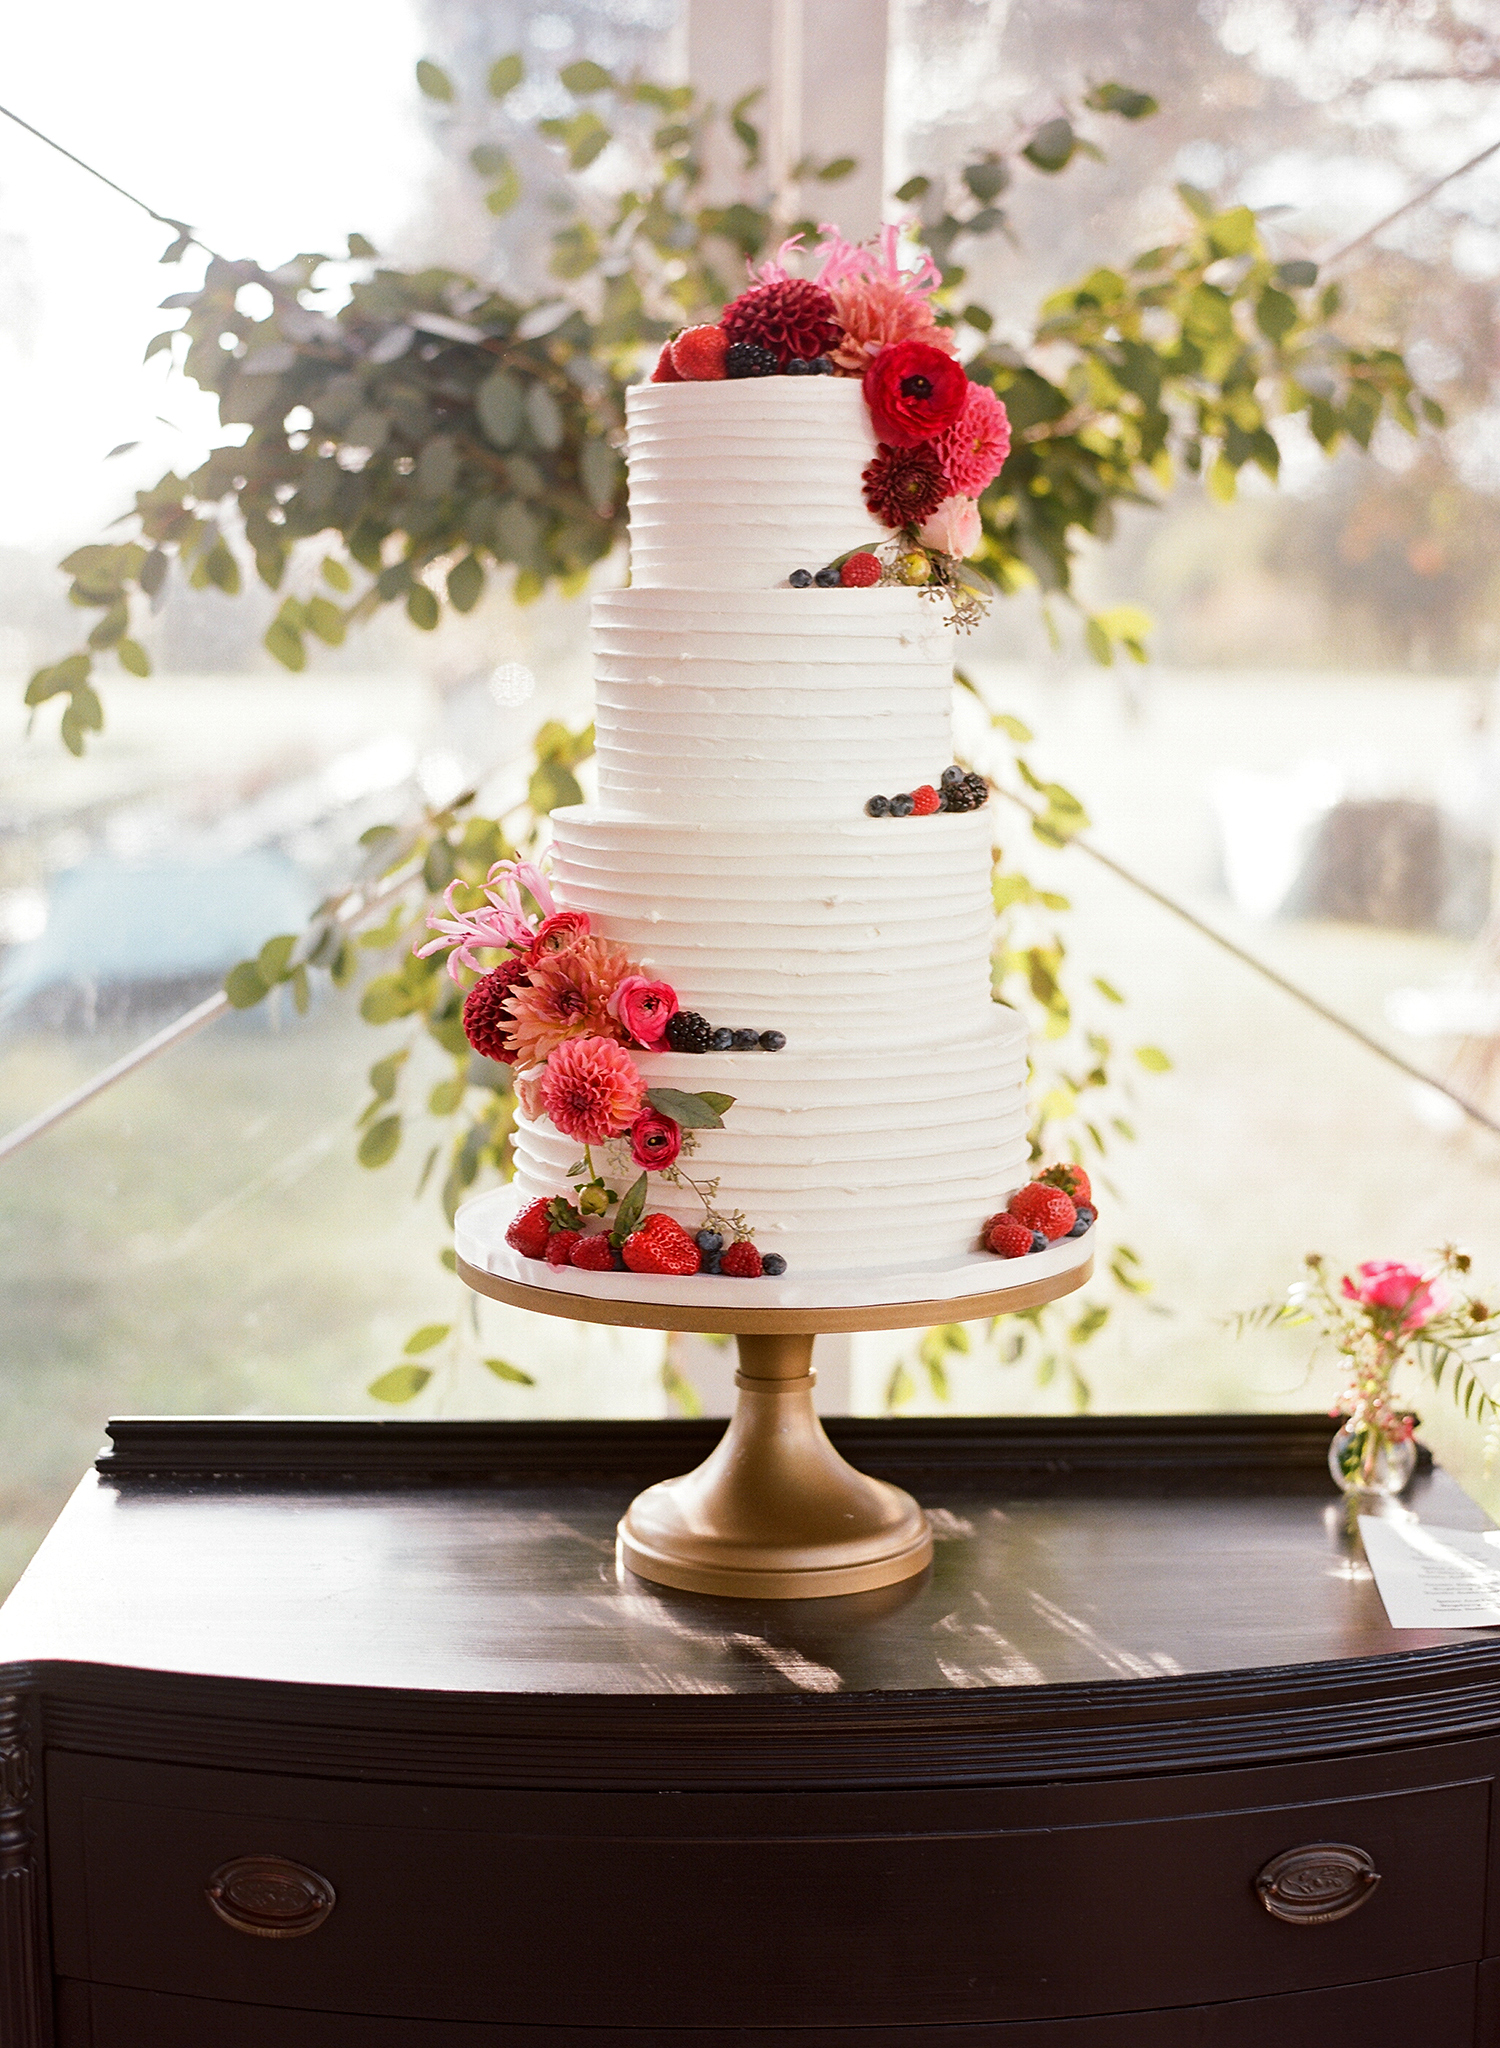 jen geoff wedding tiered cake